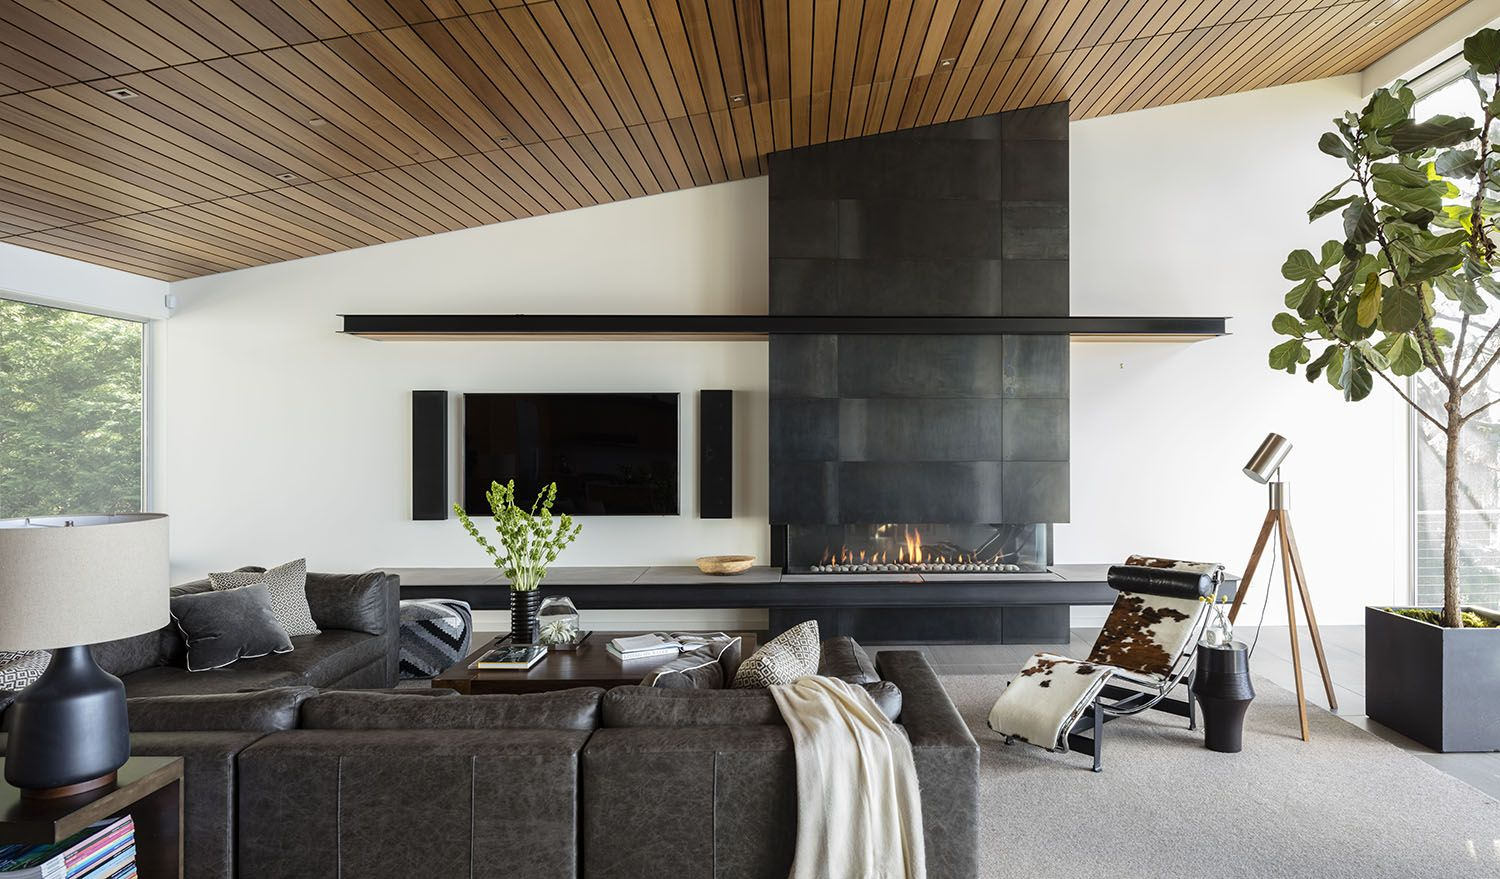 Steel Clad Fireplace Floating Bench Seattle Interior Design